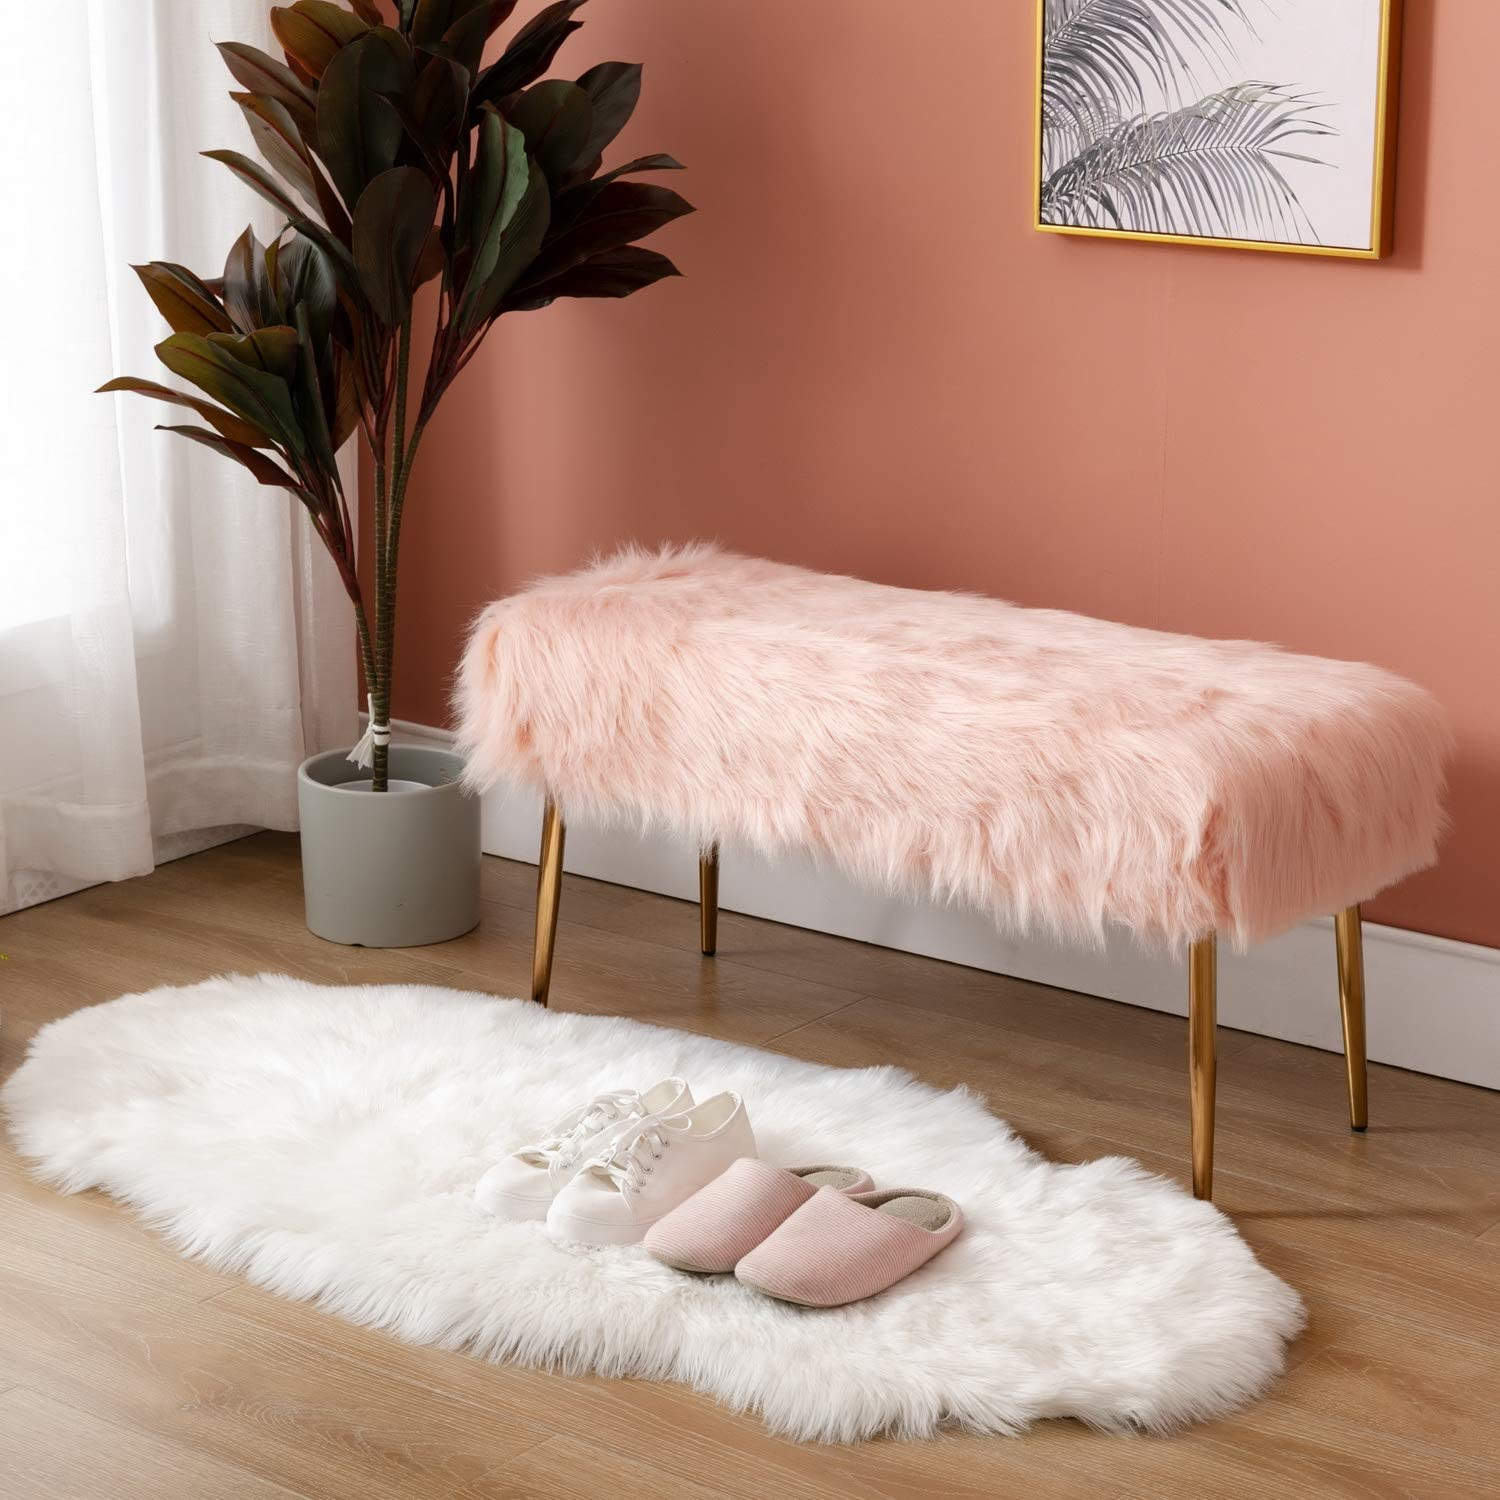 Cimoo Pink Faux Fur Ottoman Bench, Living Room Bench